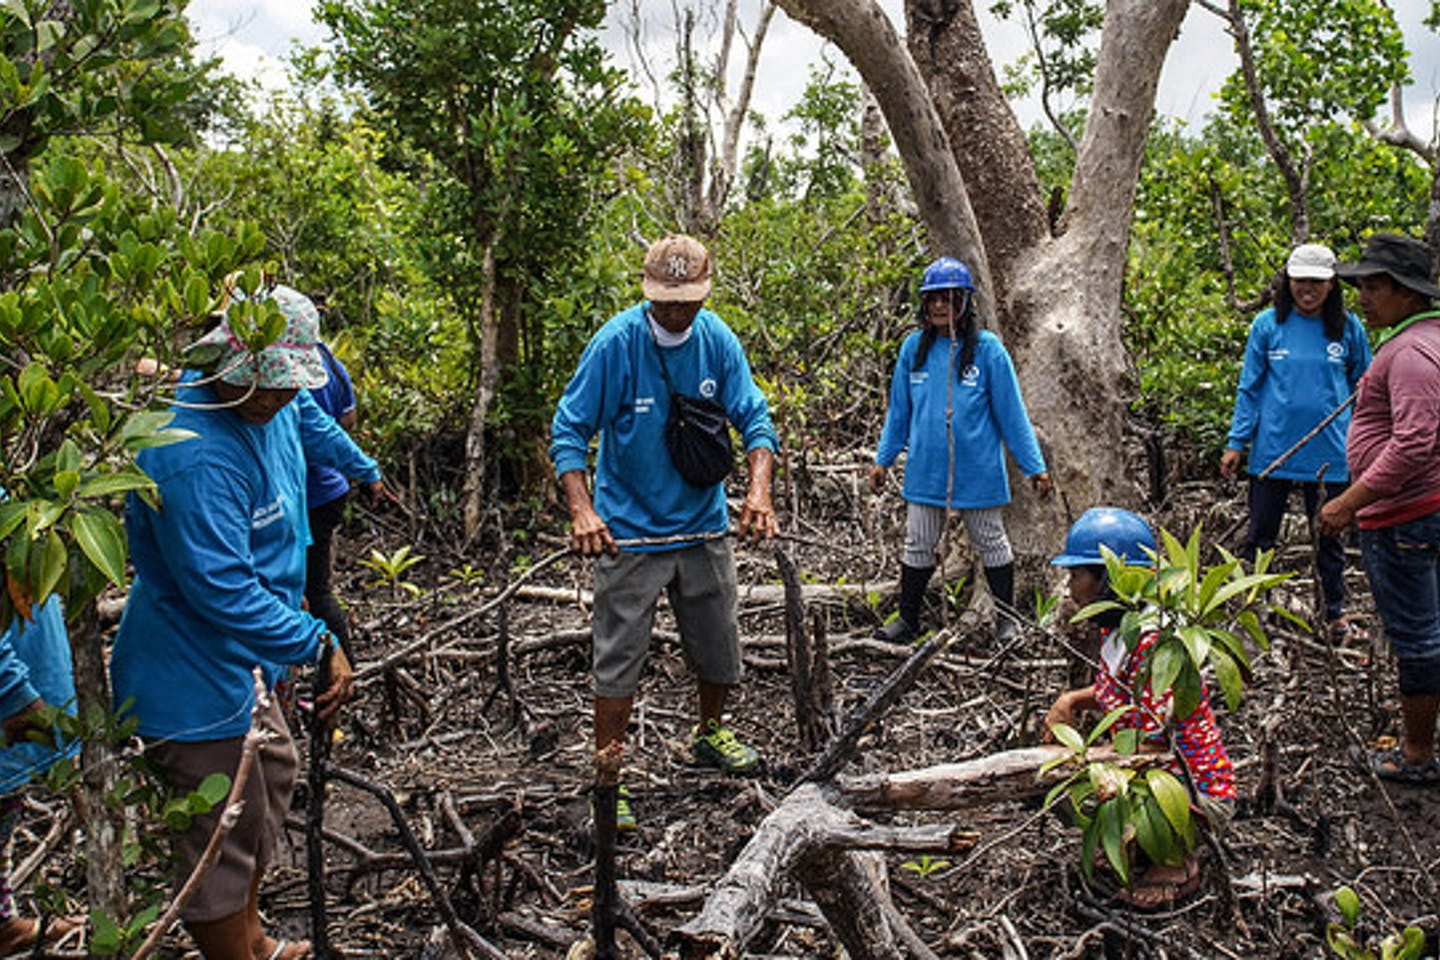 Mangrove management in the Philippines